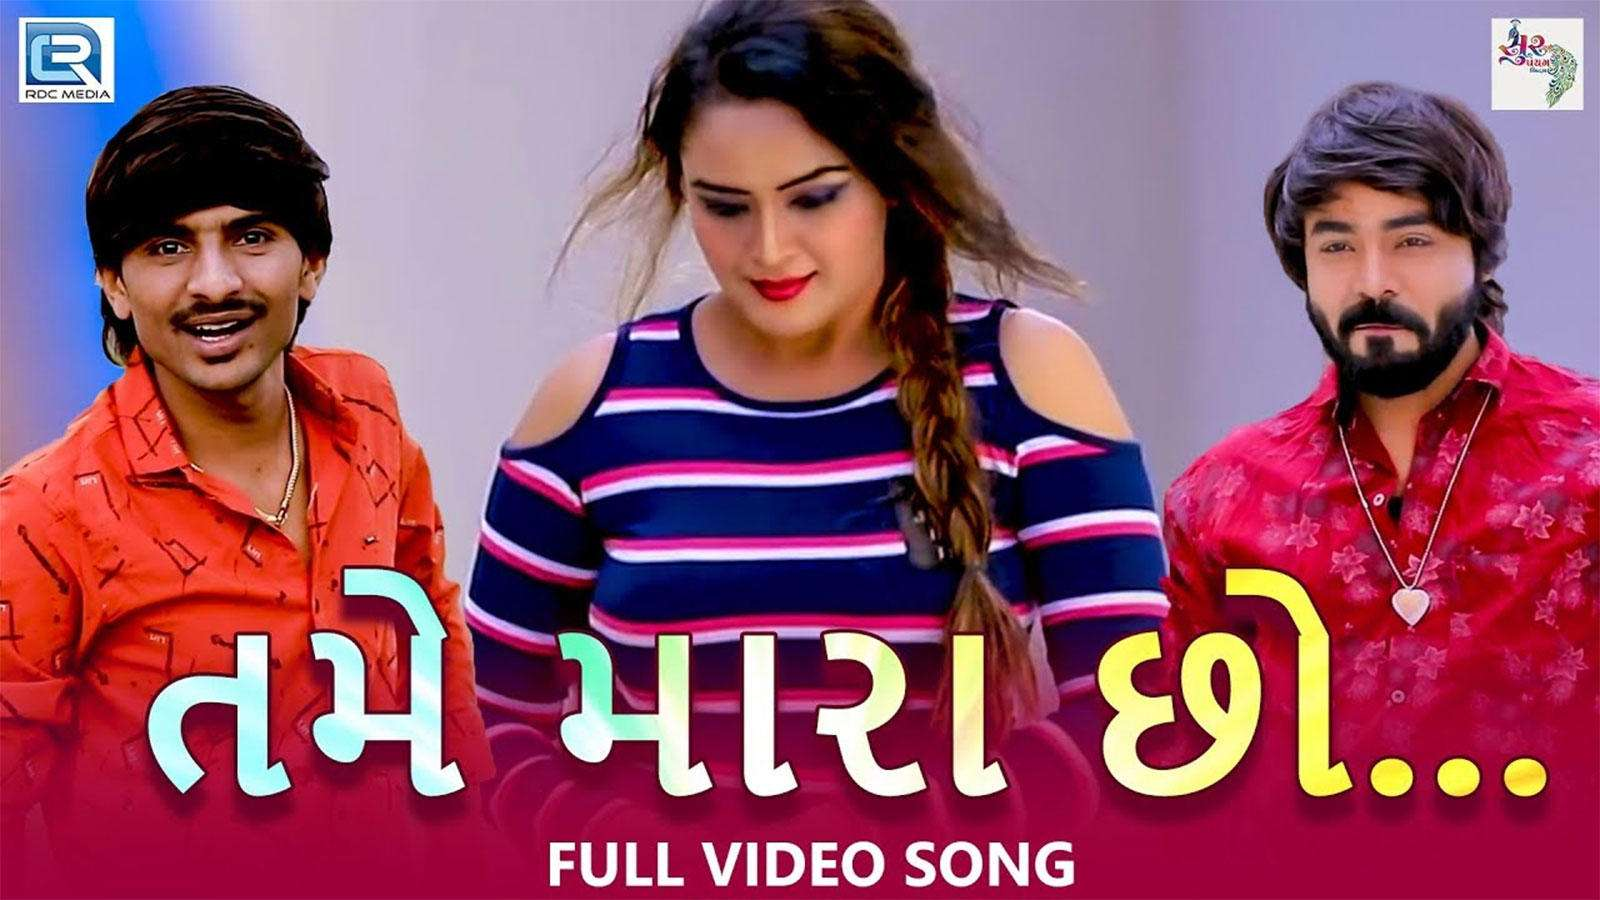 Latest Gujarati Song Tame Mara Chho Sung By Ravi Khoraj